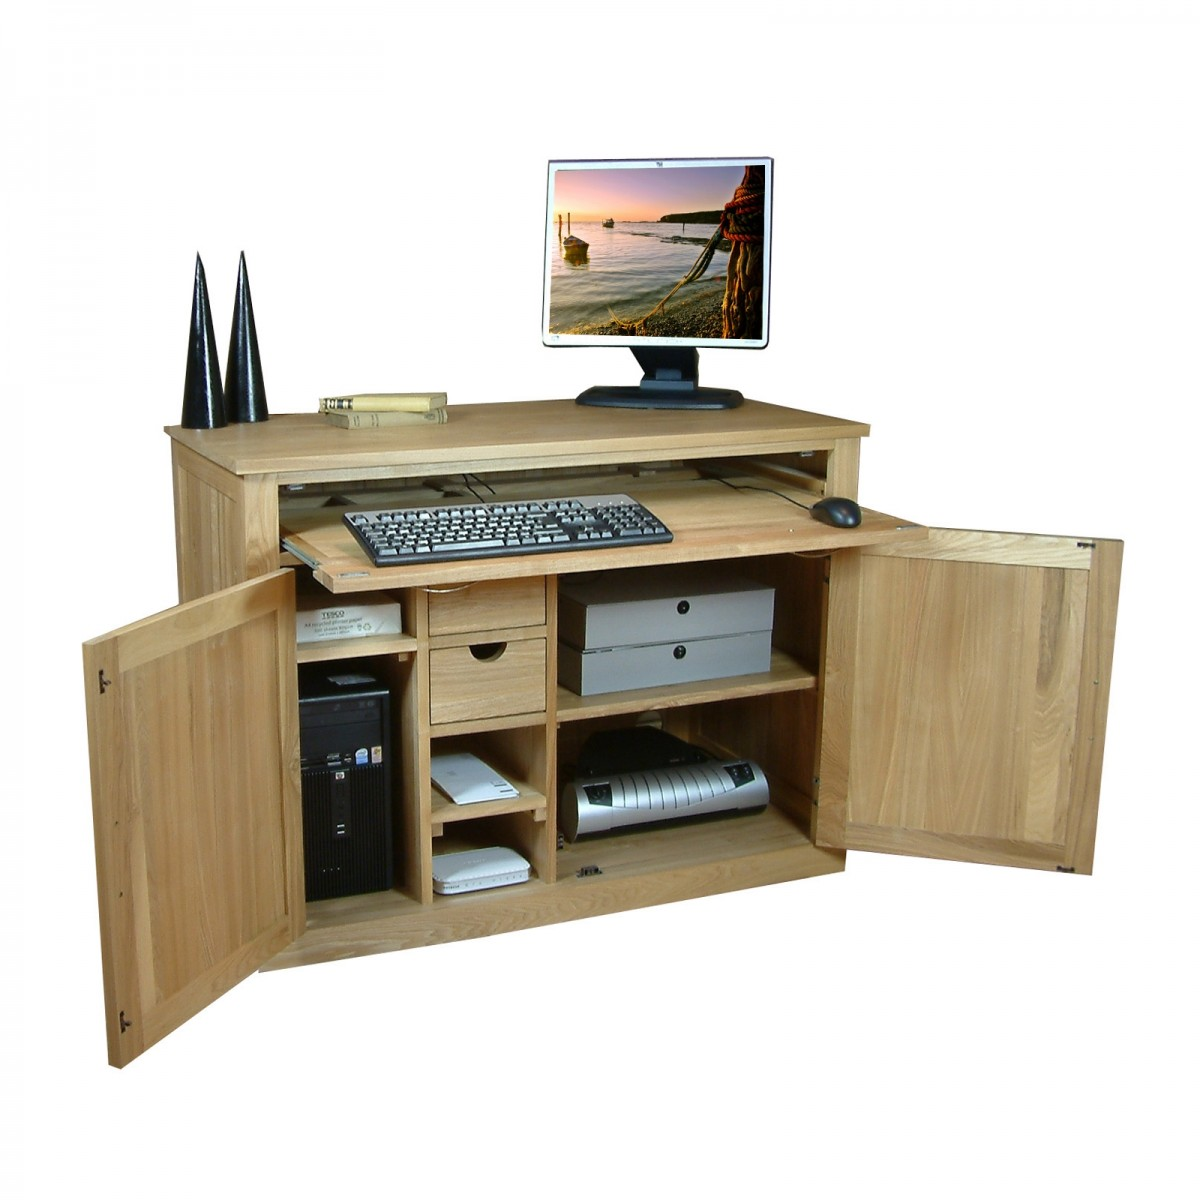 baumhaus hidden home office 2. computer desk bureau baumhaus mobel oak cor06a hidden home office 2